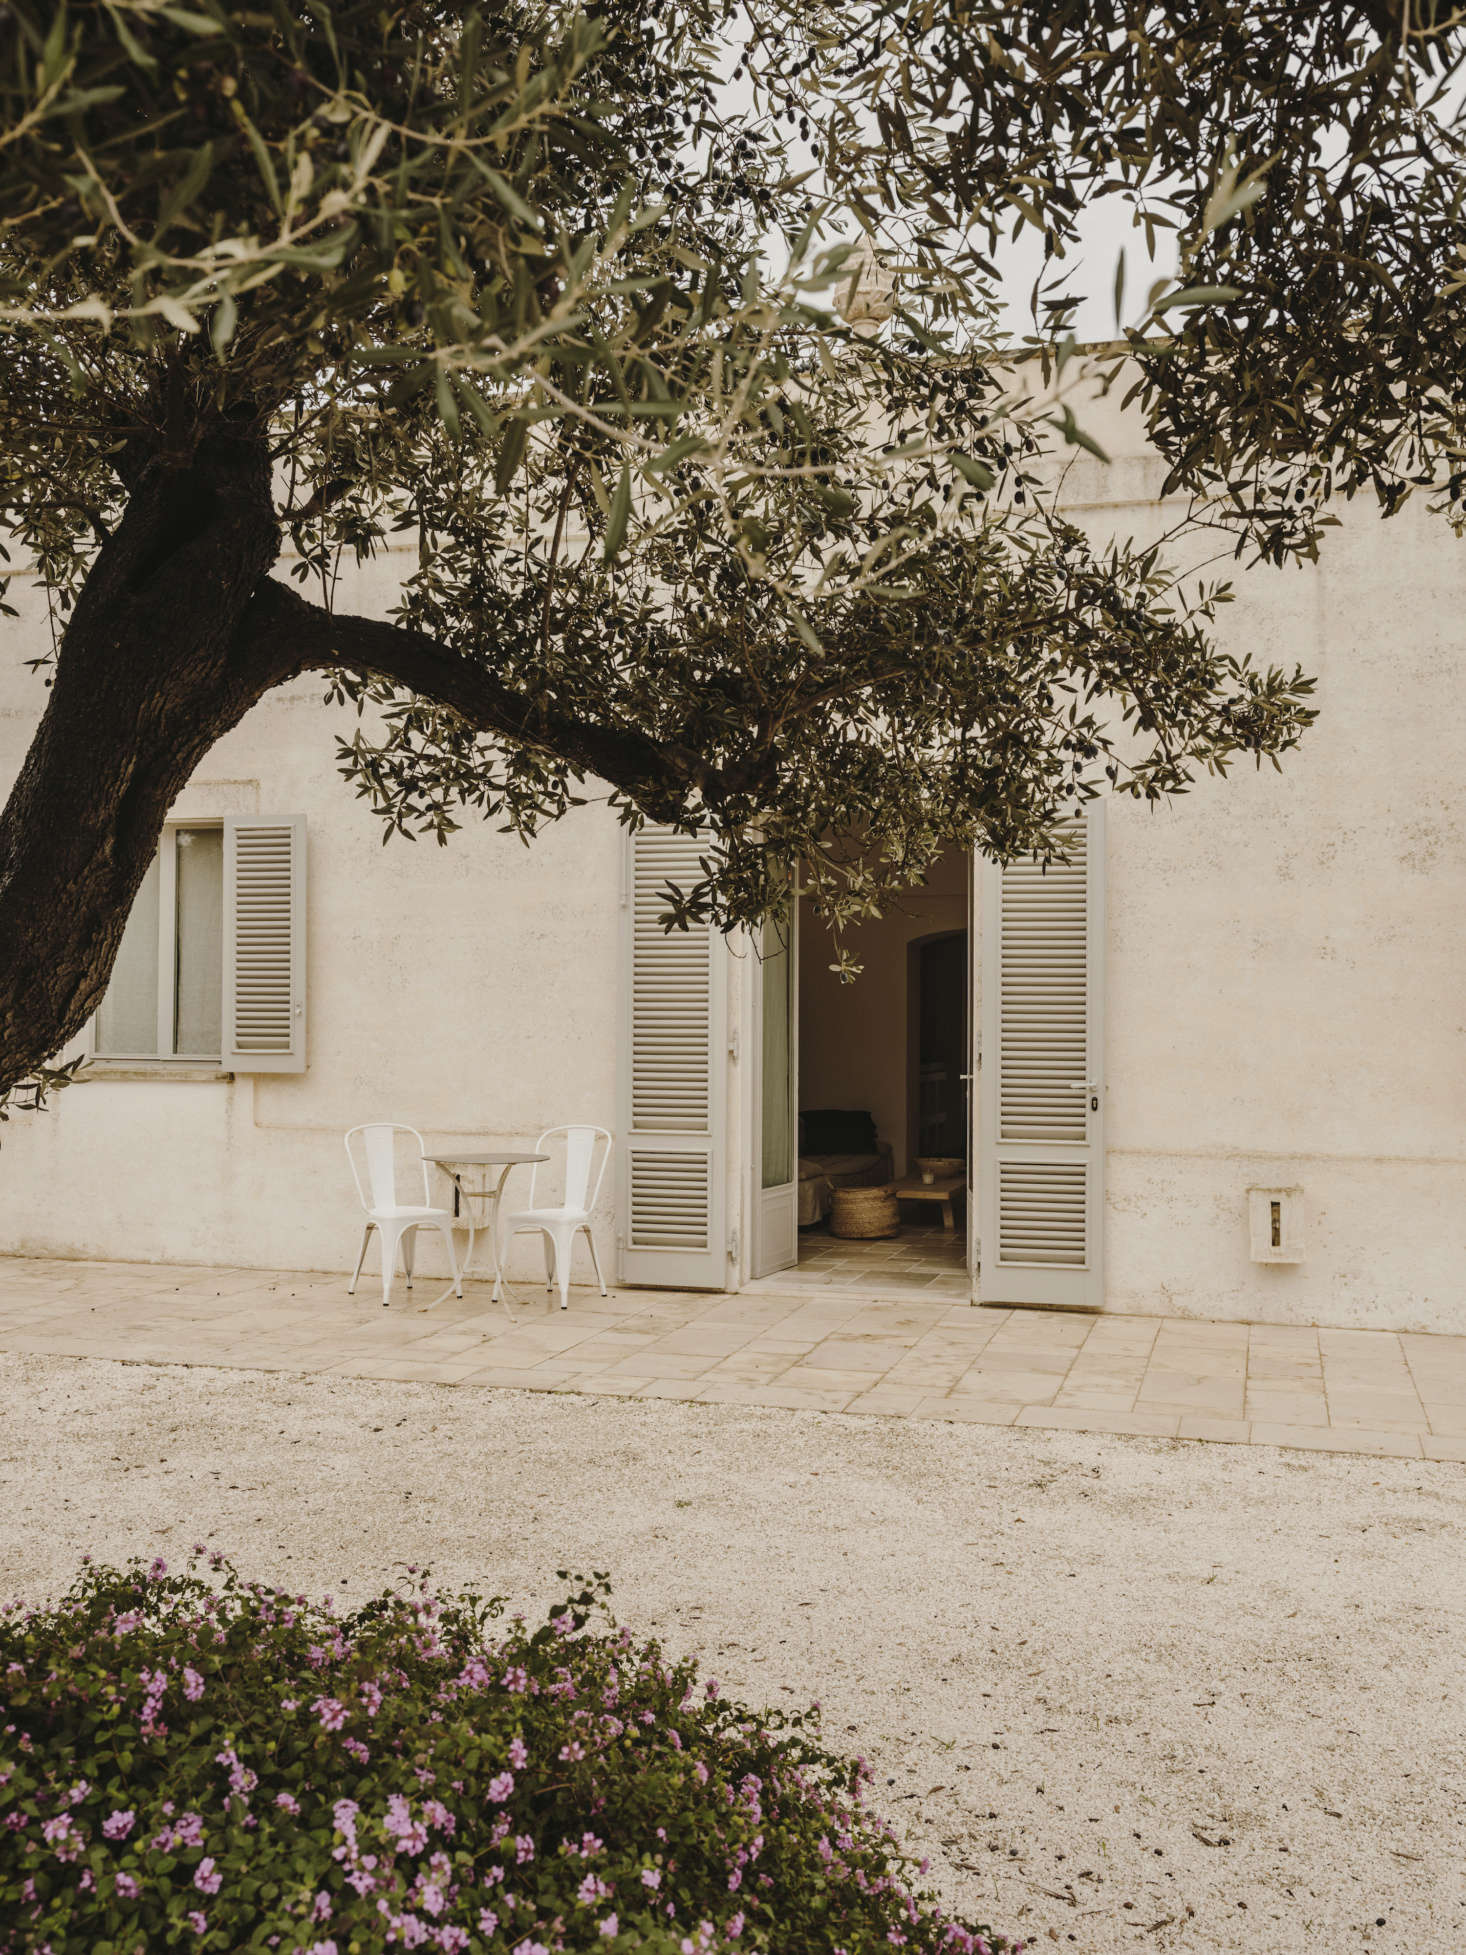 """The 1920s-era villa has been transformed by Studio Andrew Trotter with """"local materials, traditional building methods, and details from the local architecture, resulting in a three-bedroom, three-bathroom house that fits perfectly within the olive trees, a real Italian vernacular."""" Double doors open outwards onto the gravel patios."""